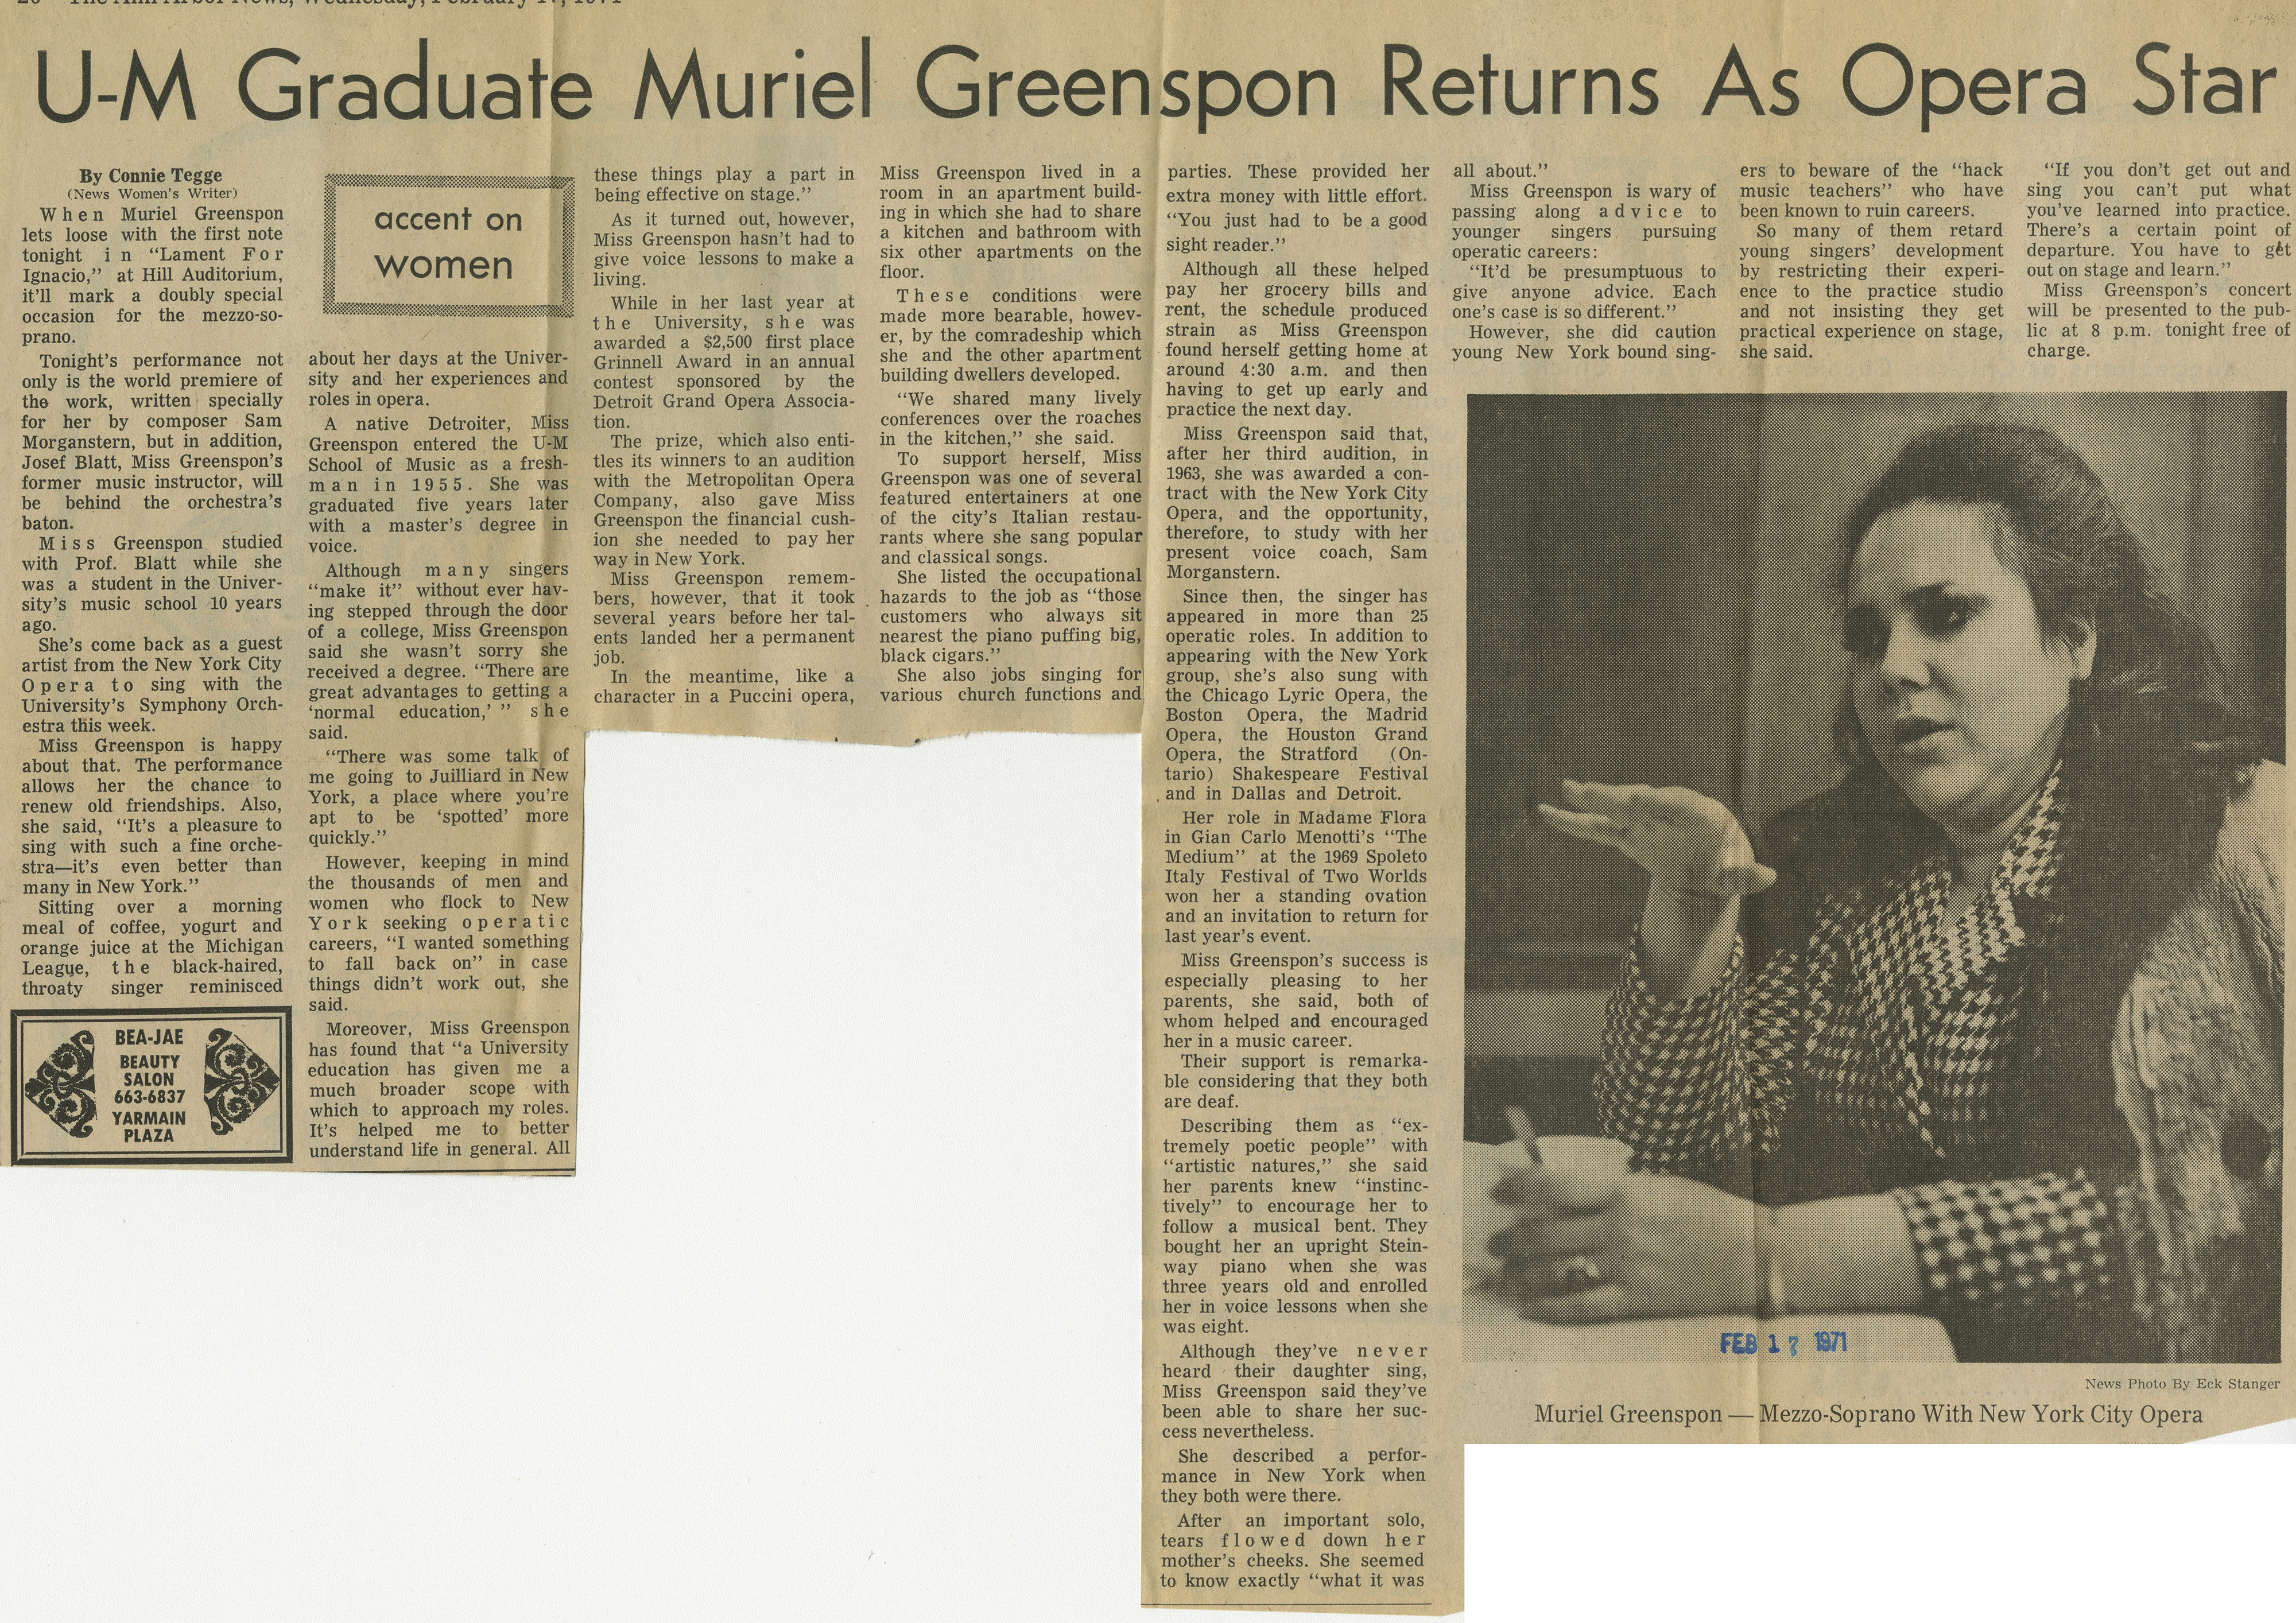 U-M Graduate Muriel Greenspon Returns As Opera Star image